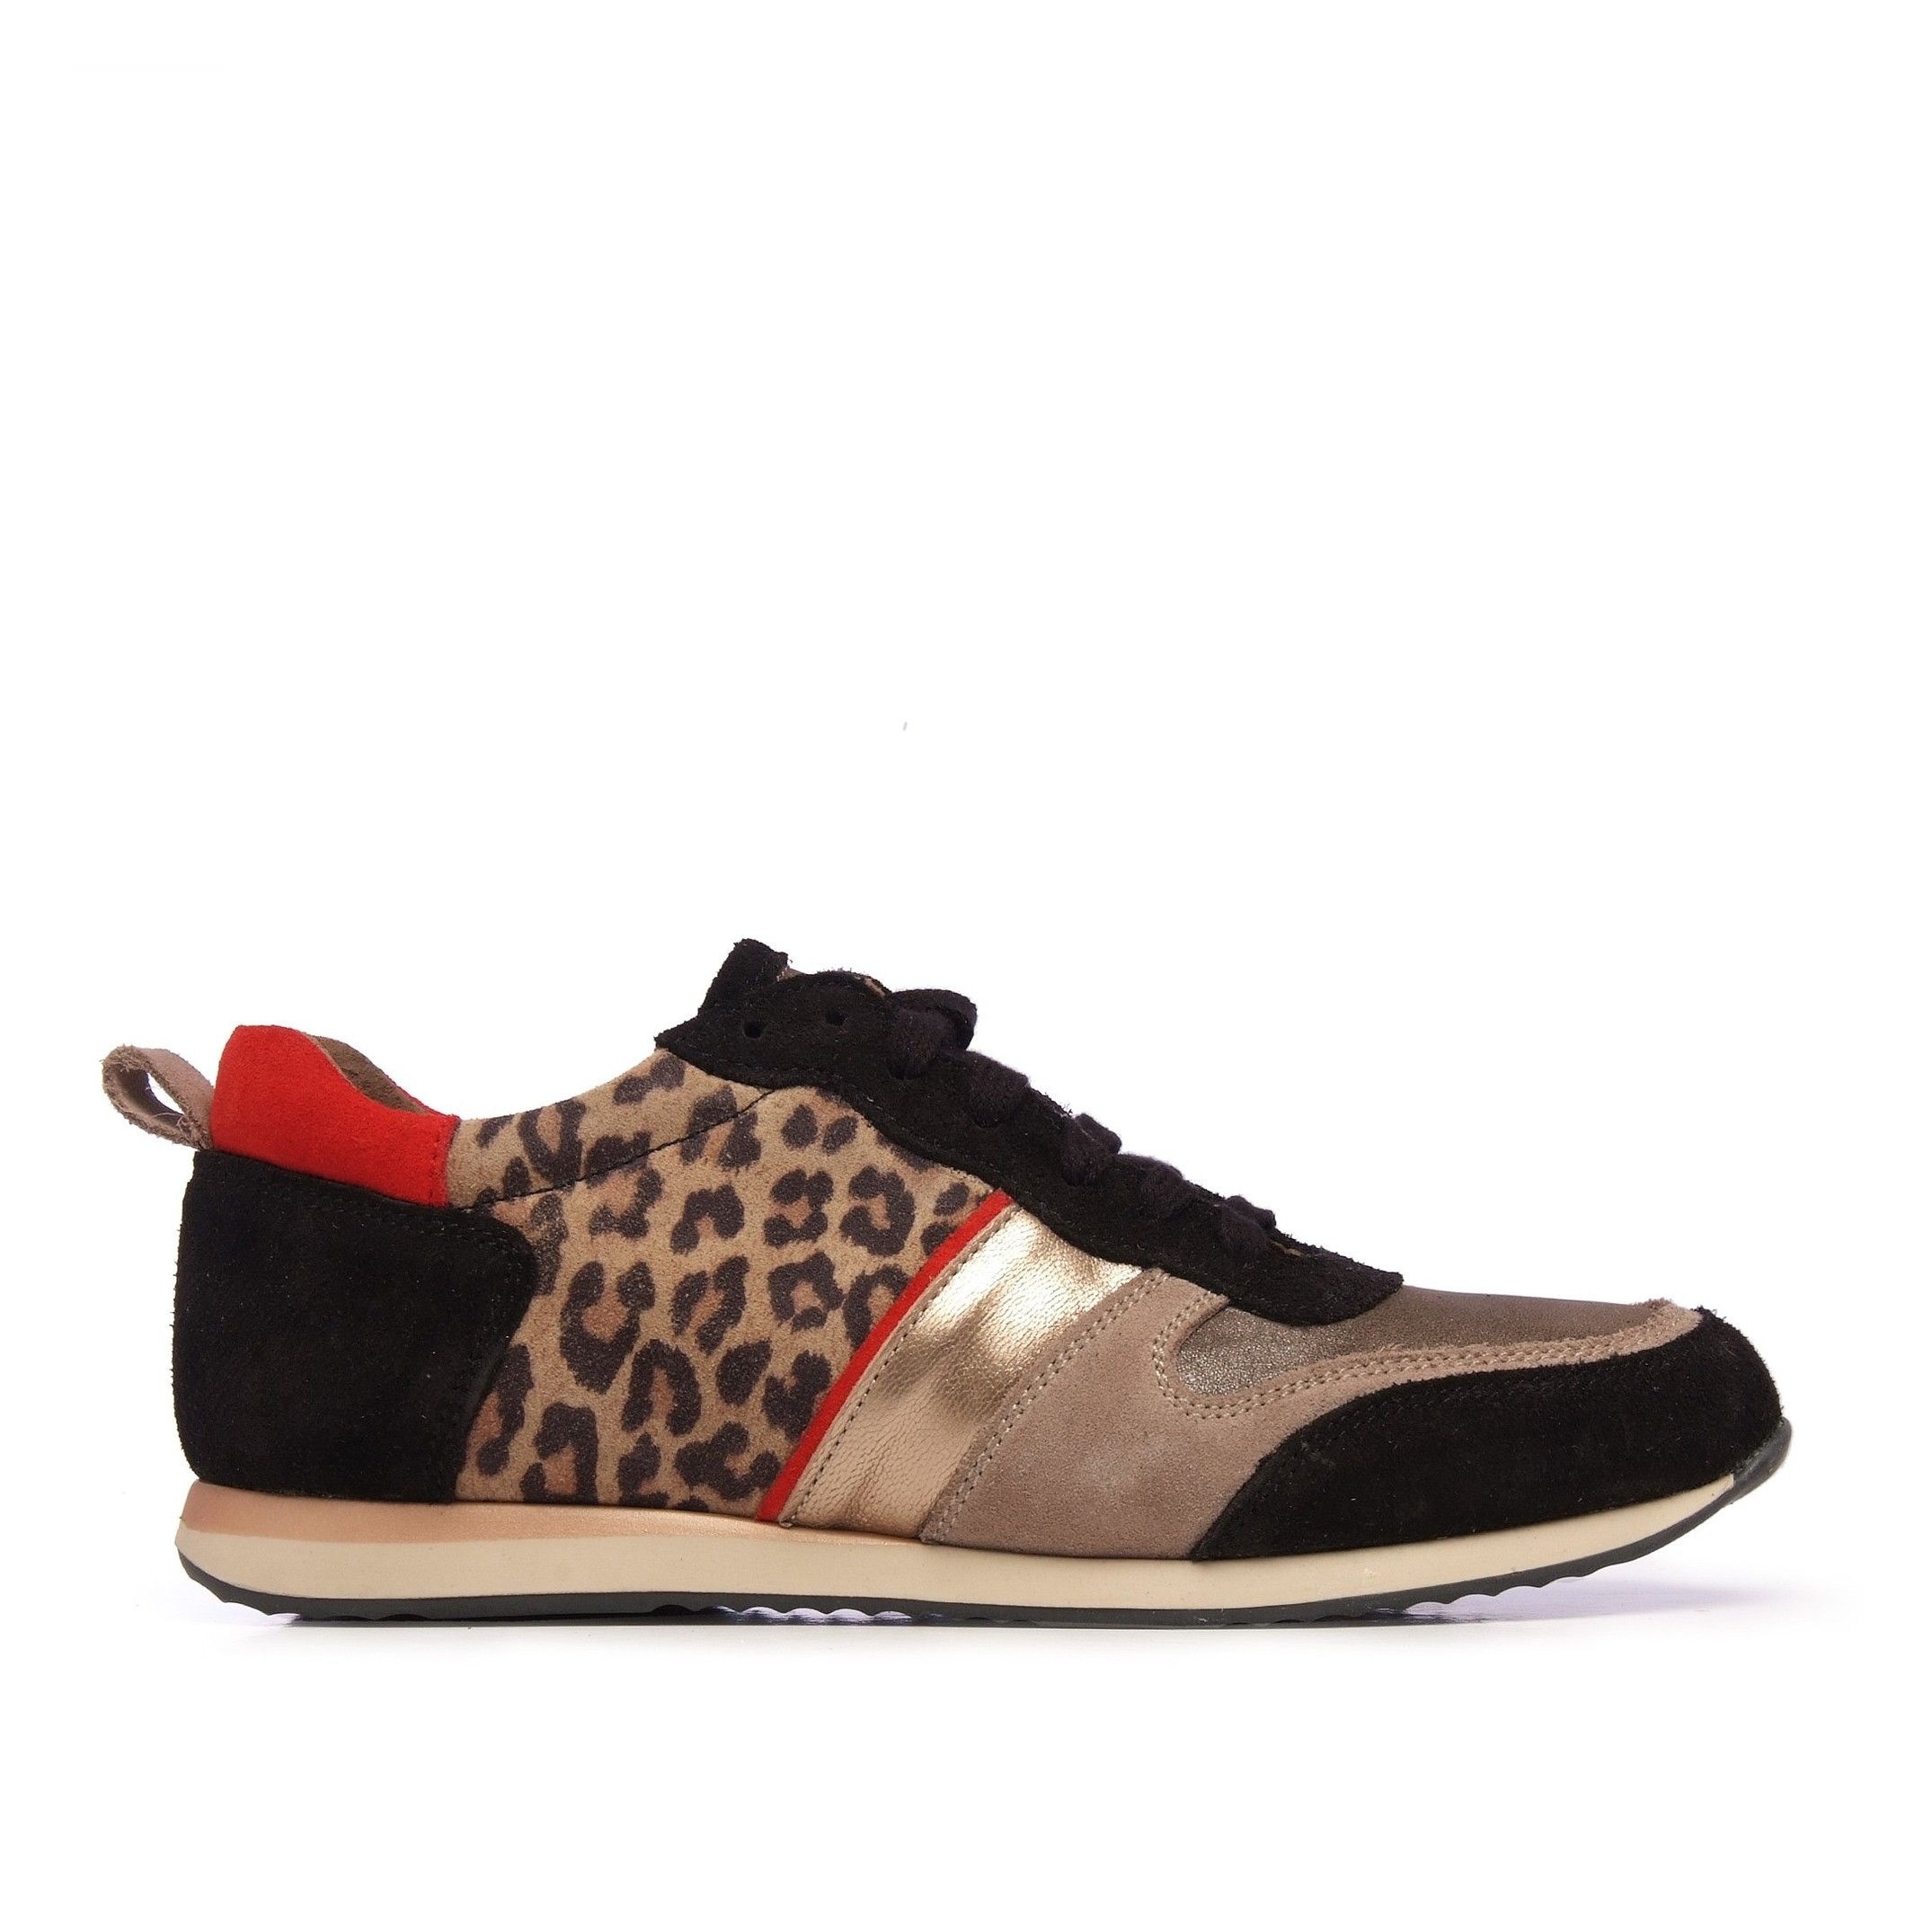 Eva López Leather Sneaker Women Laces Black Shoes